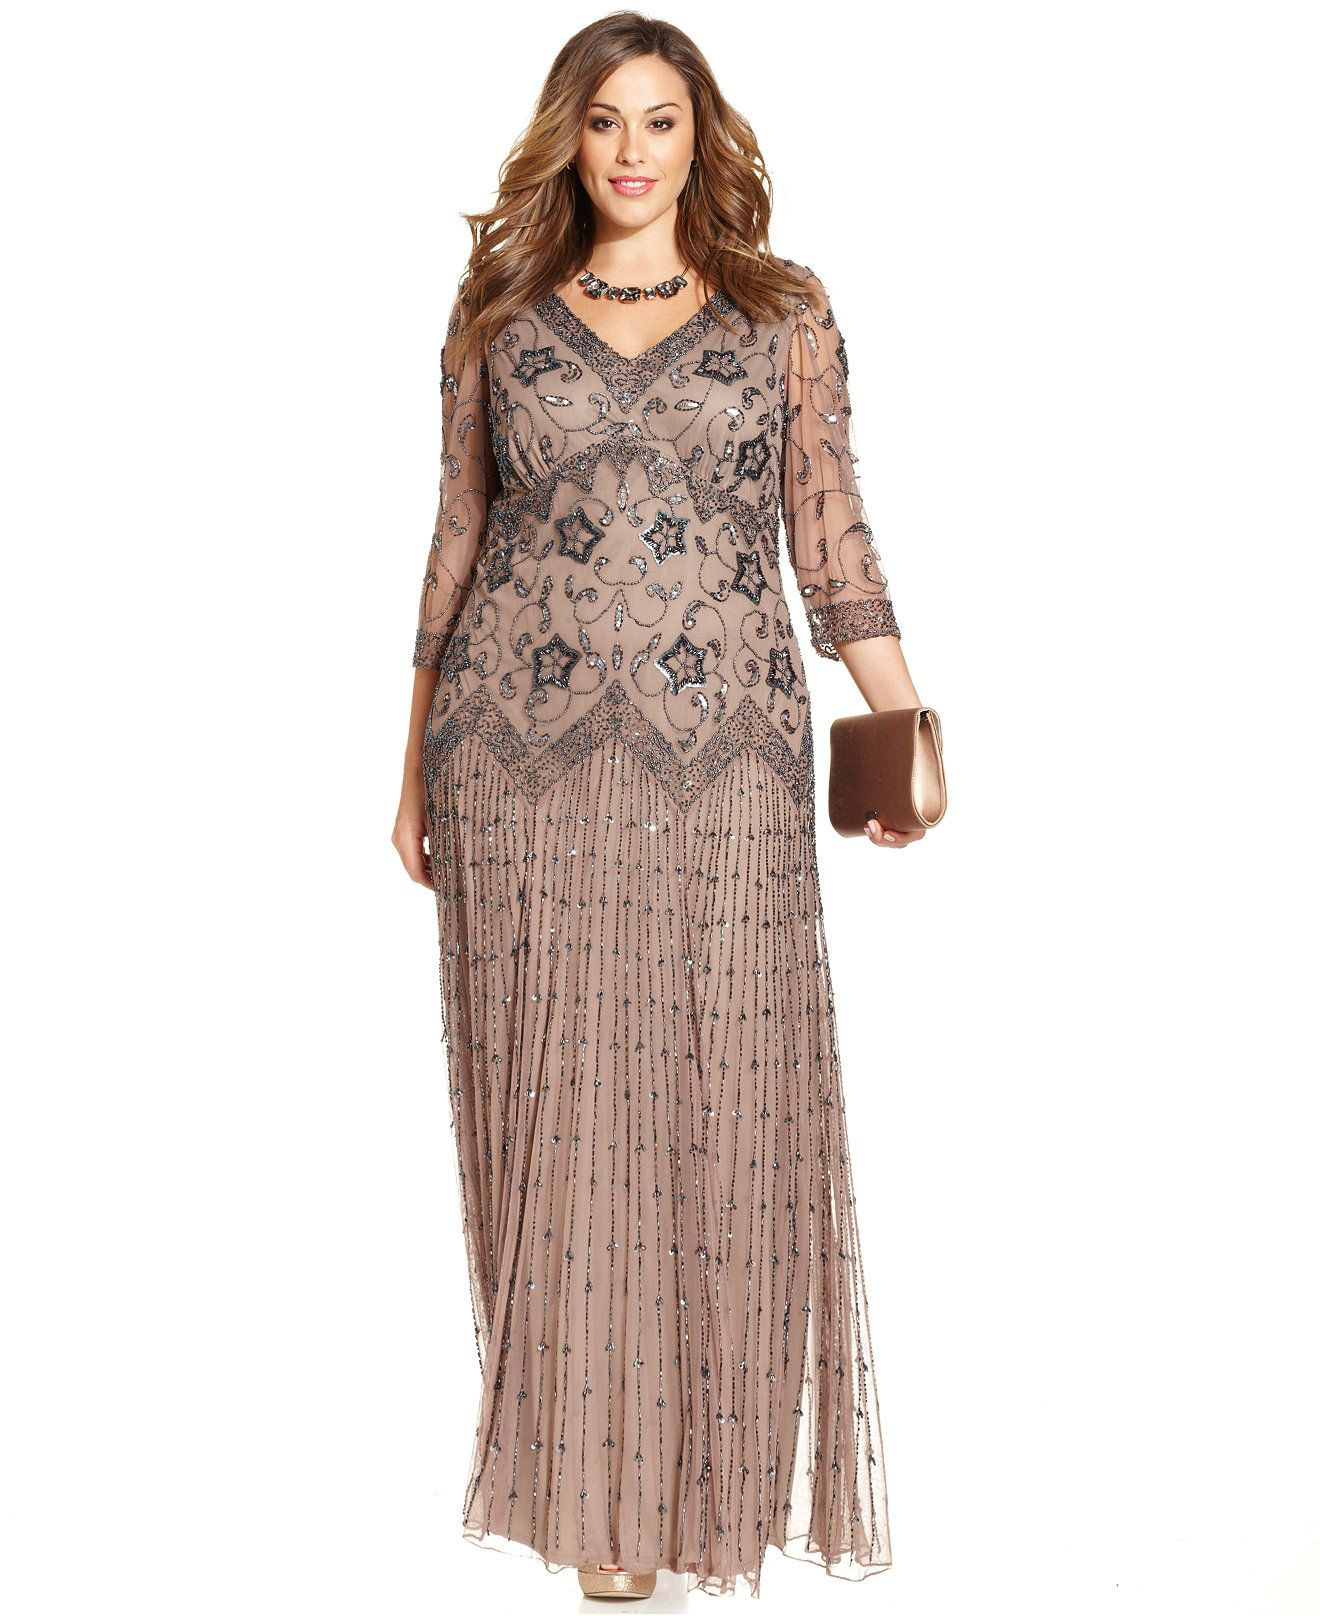 e9183f96e6 Macys Dresses Plus Size Formal - Gomes Weine AG